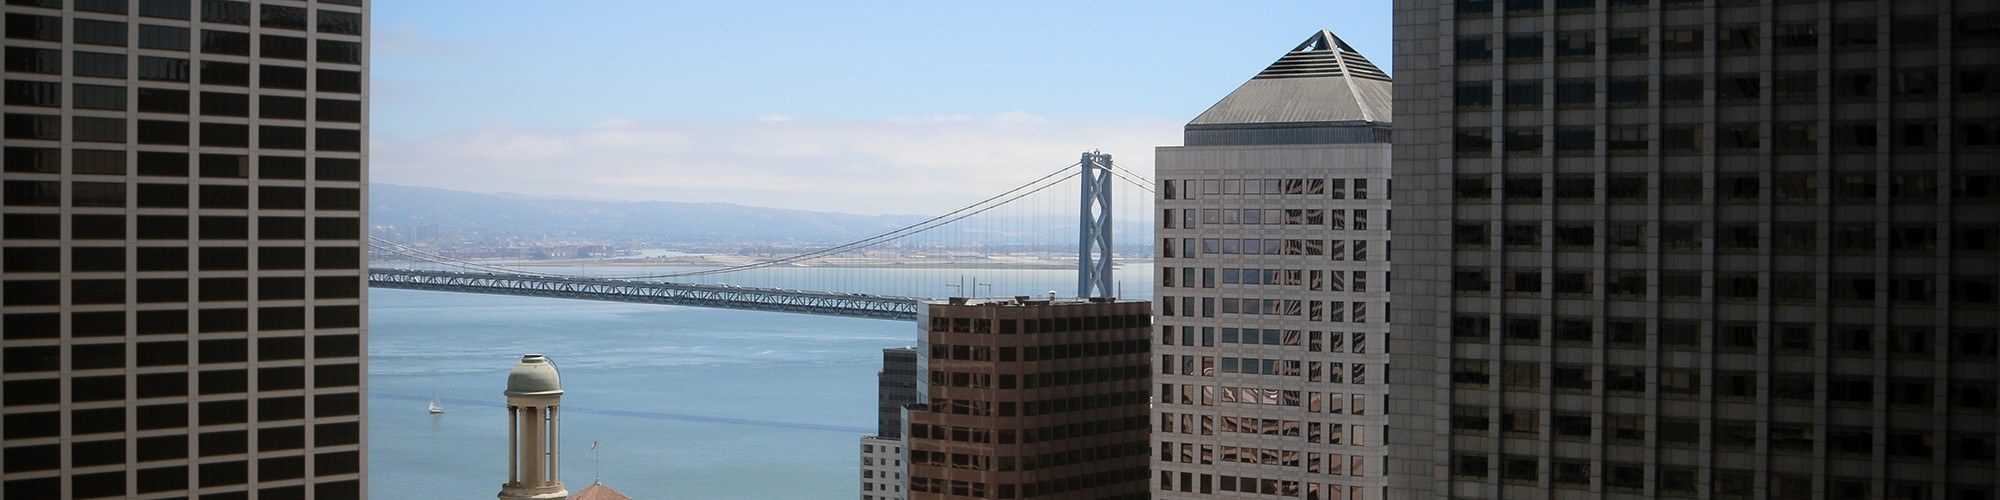 banner-101-california-street-san-francisco-view.jpg